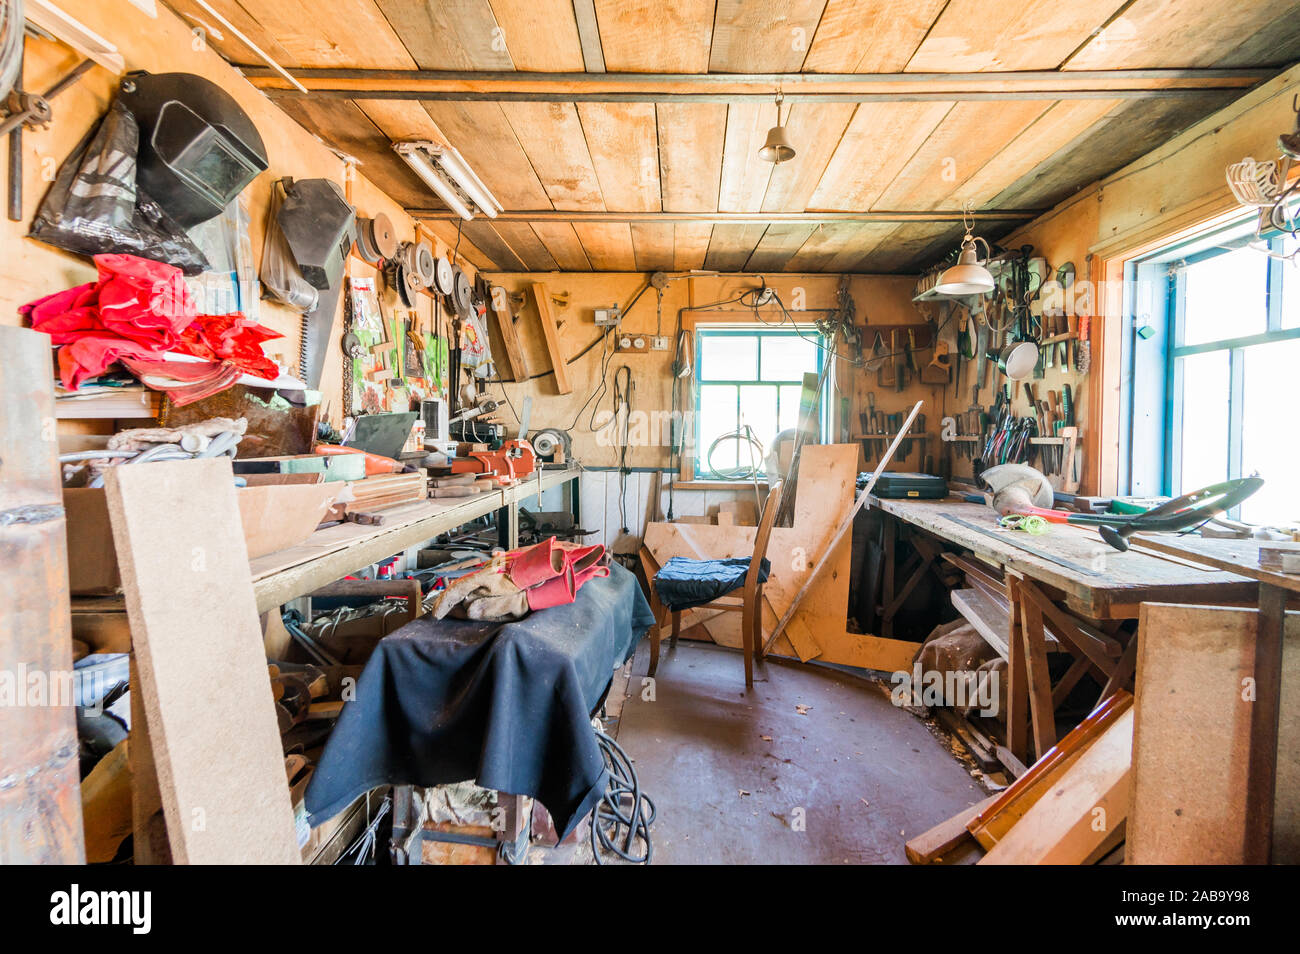 Russia Moscow July 08 2019 Interior Room Apartment Diy In Garage Workshop Old Machinery Repair And Production Equipment Stock Photo Alamy